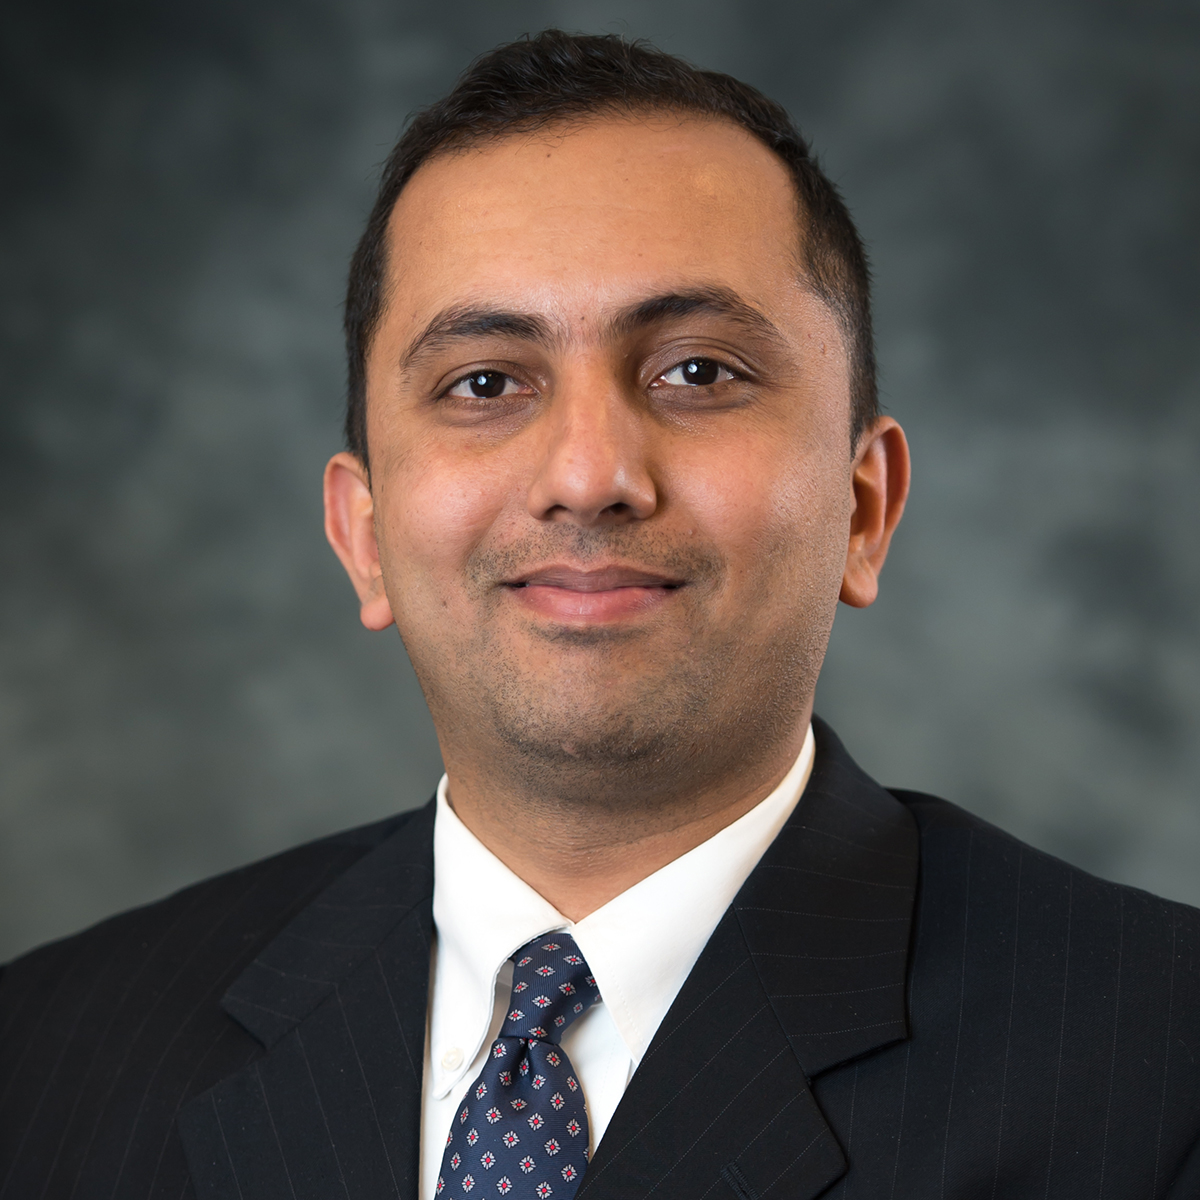 Gowtham is anHPC Research Scientist, an Adjunct Assistant Professor inPhysicsandElectrical and Computer EngineeringandNSF XSEDE Campus Championat Michigan Technological University. He is also an avid runner and Madison Marathon finisher.